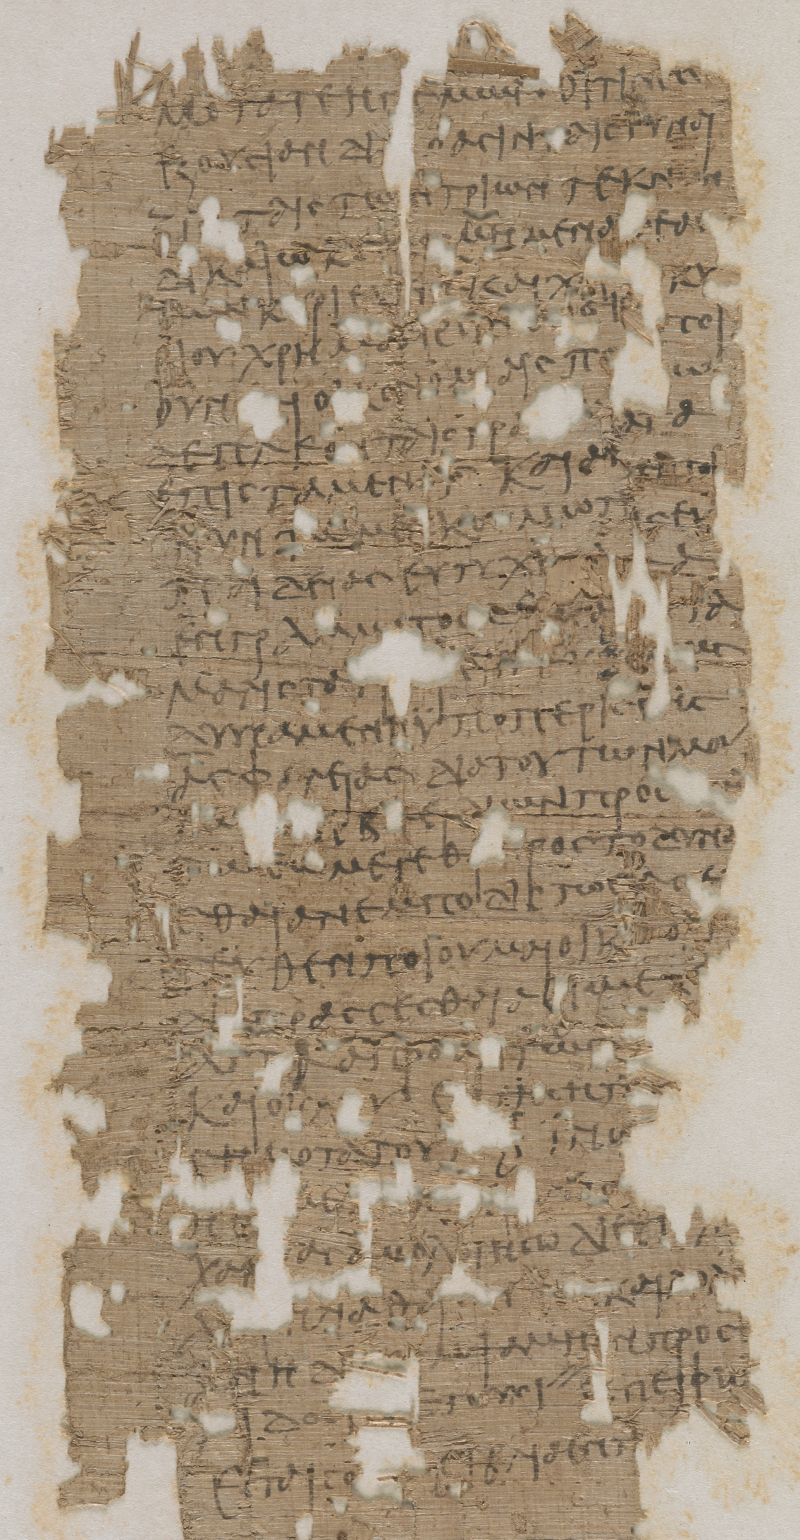 Papyrus_2458_cropped